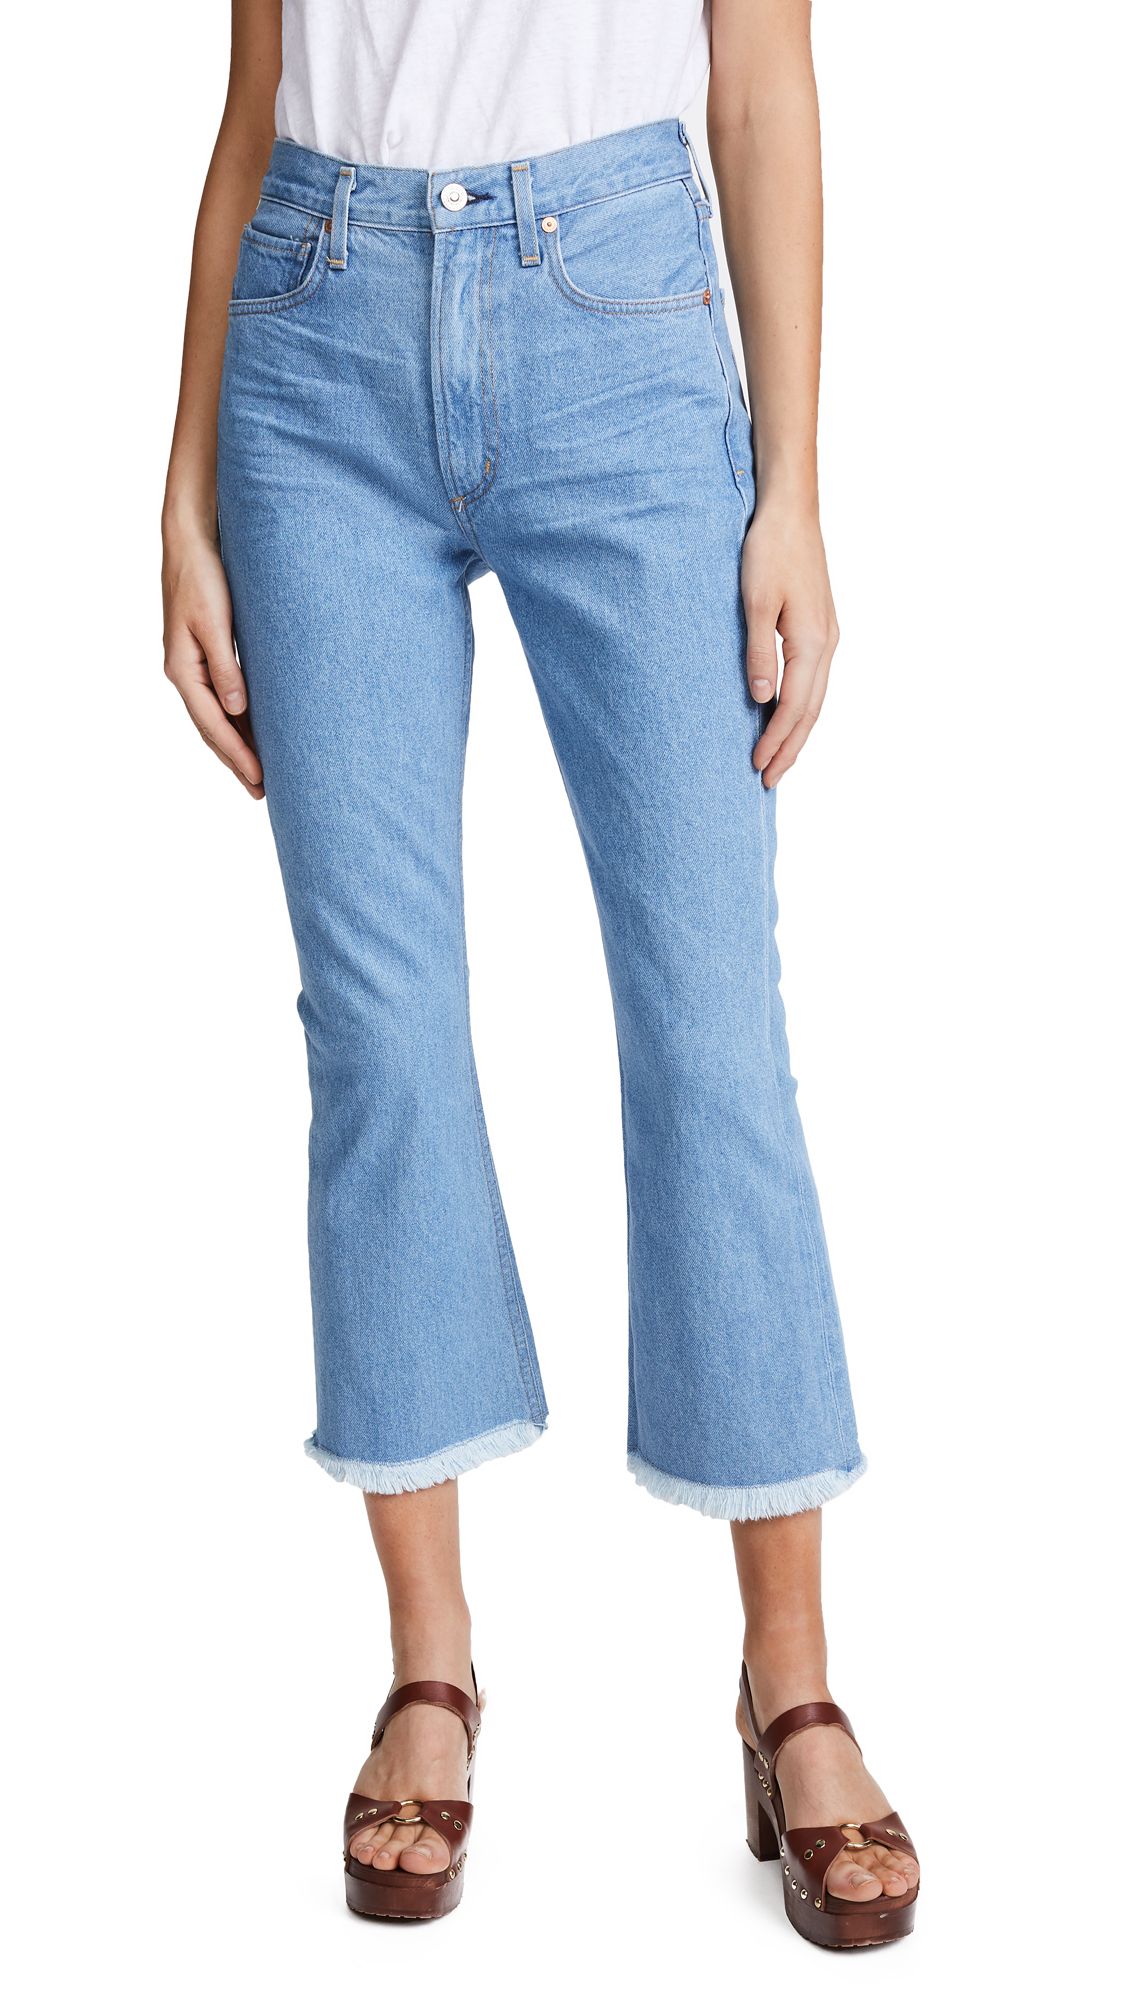 Citizens of Humanity Estella High Rise Fray Ankle Jeans - Day Trip